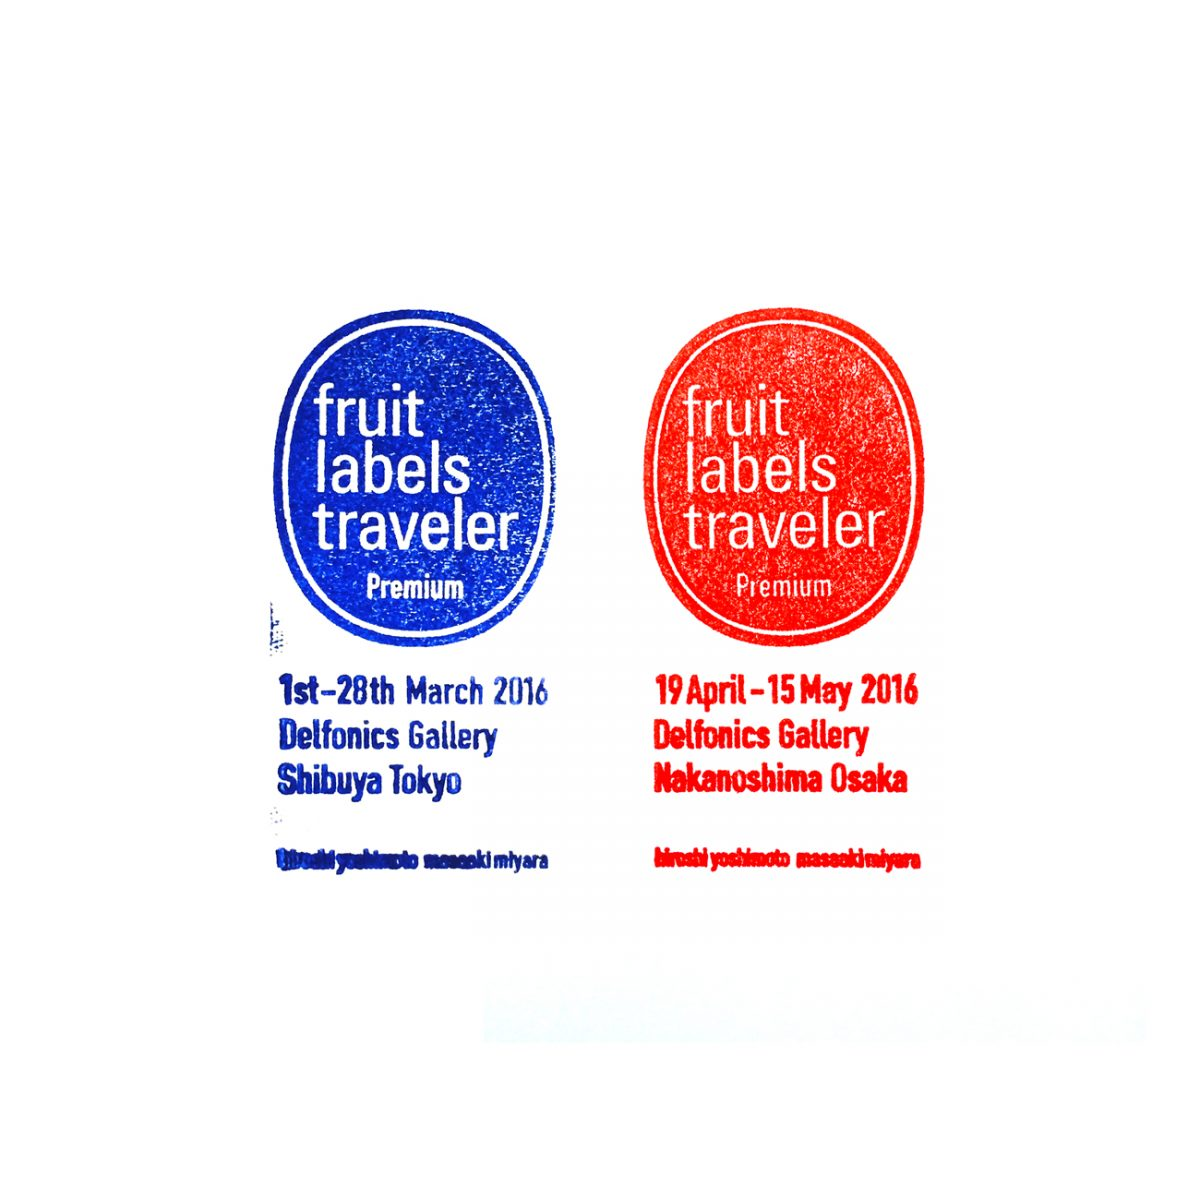 Fruit labels traveler